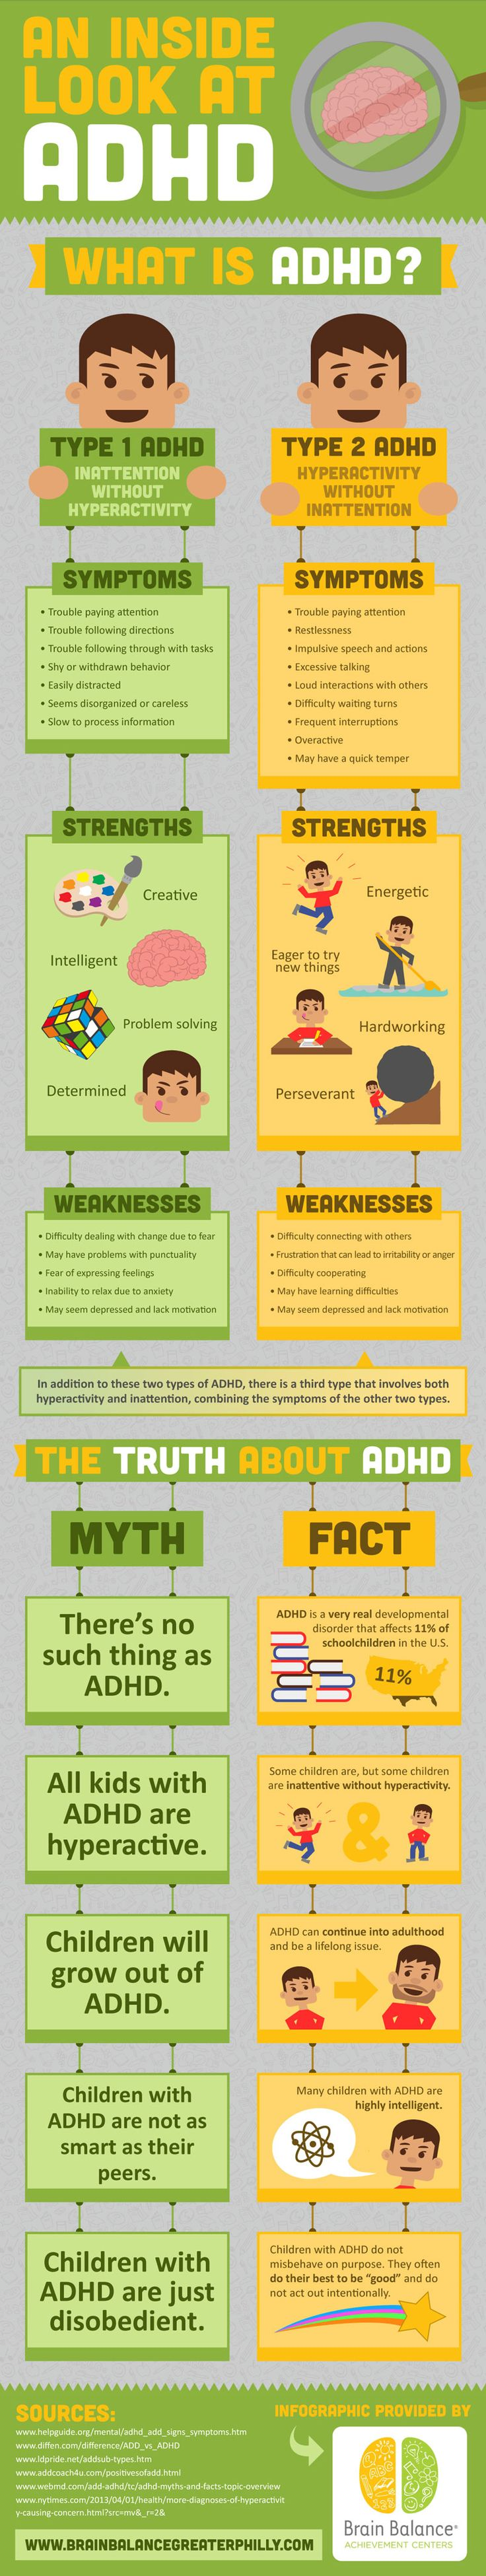 Here is some information in detail and short for people who DONT UNDERSTAND - I have 2 of my 4 children who have been diagnosed with ADHD by extended studies from dr with info from teachers to assist. It's different between both of them. These symptoms are right on!